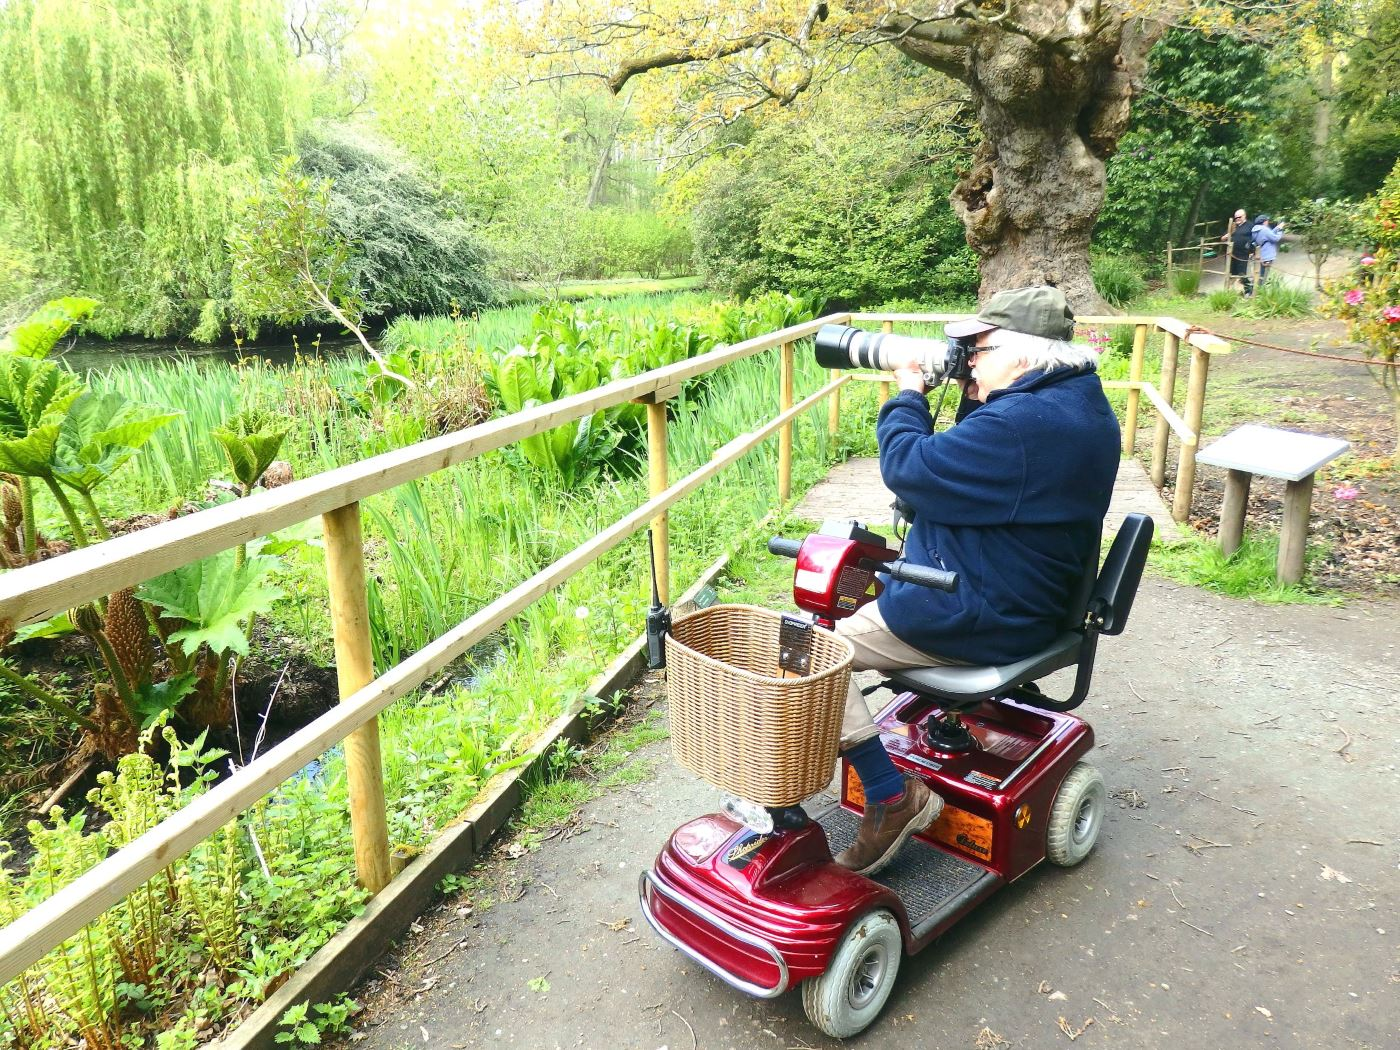 tabs taberham at fairhaven with new mobility scooter